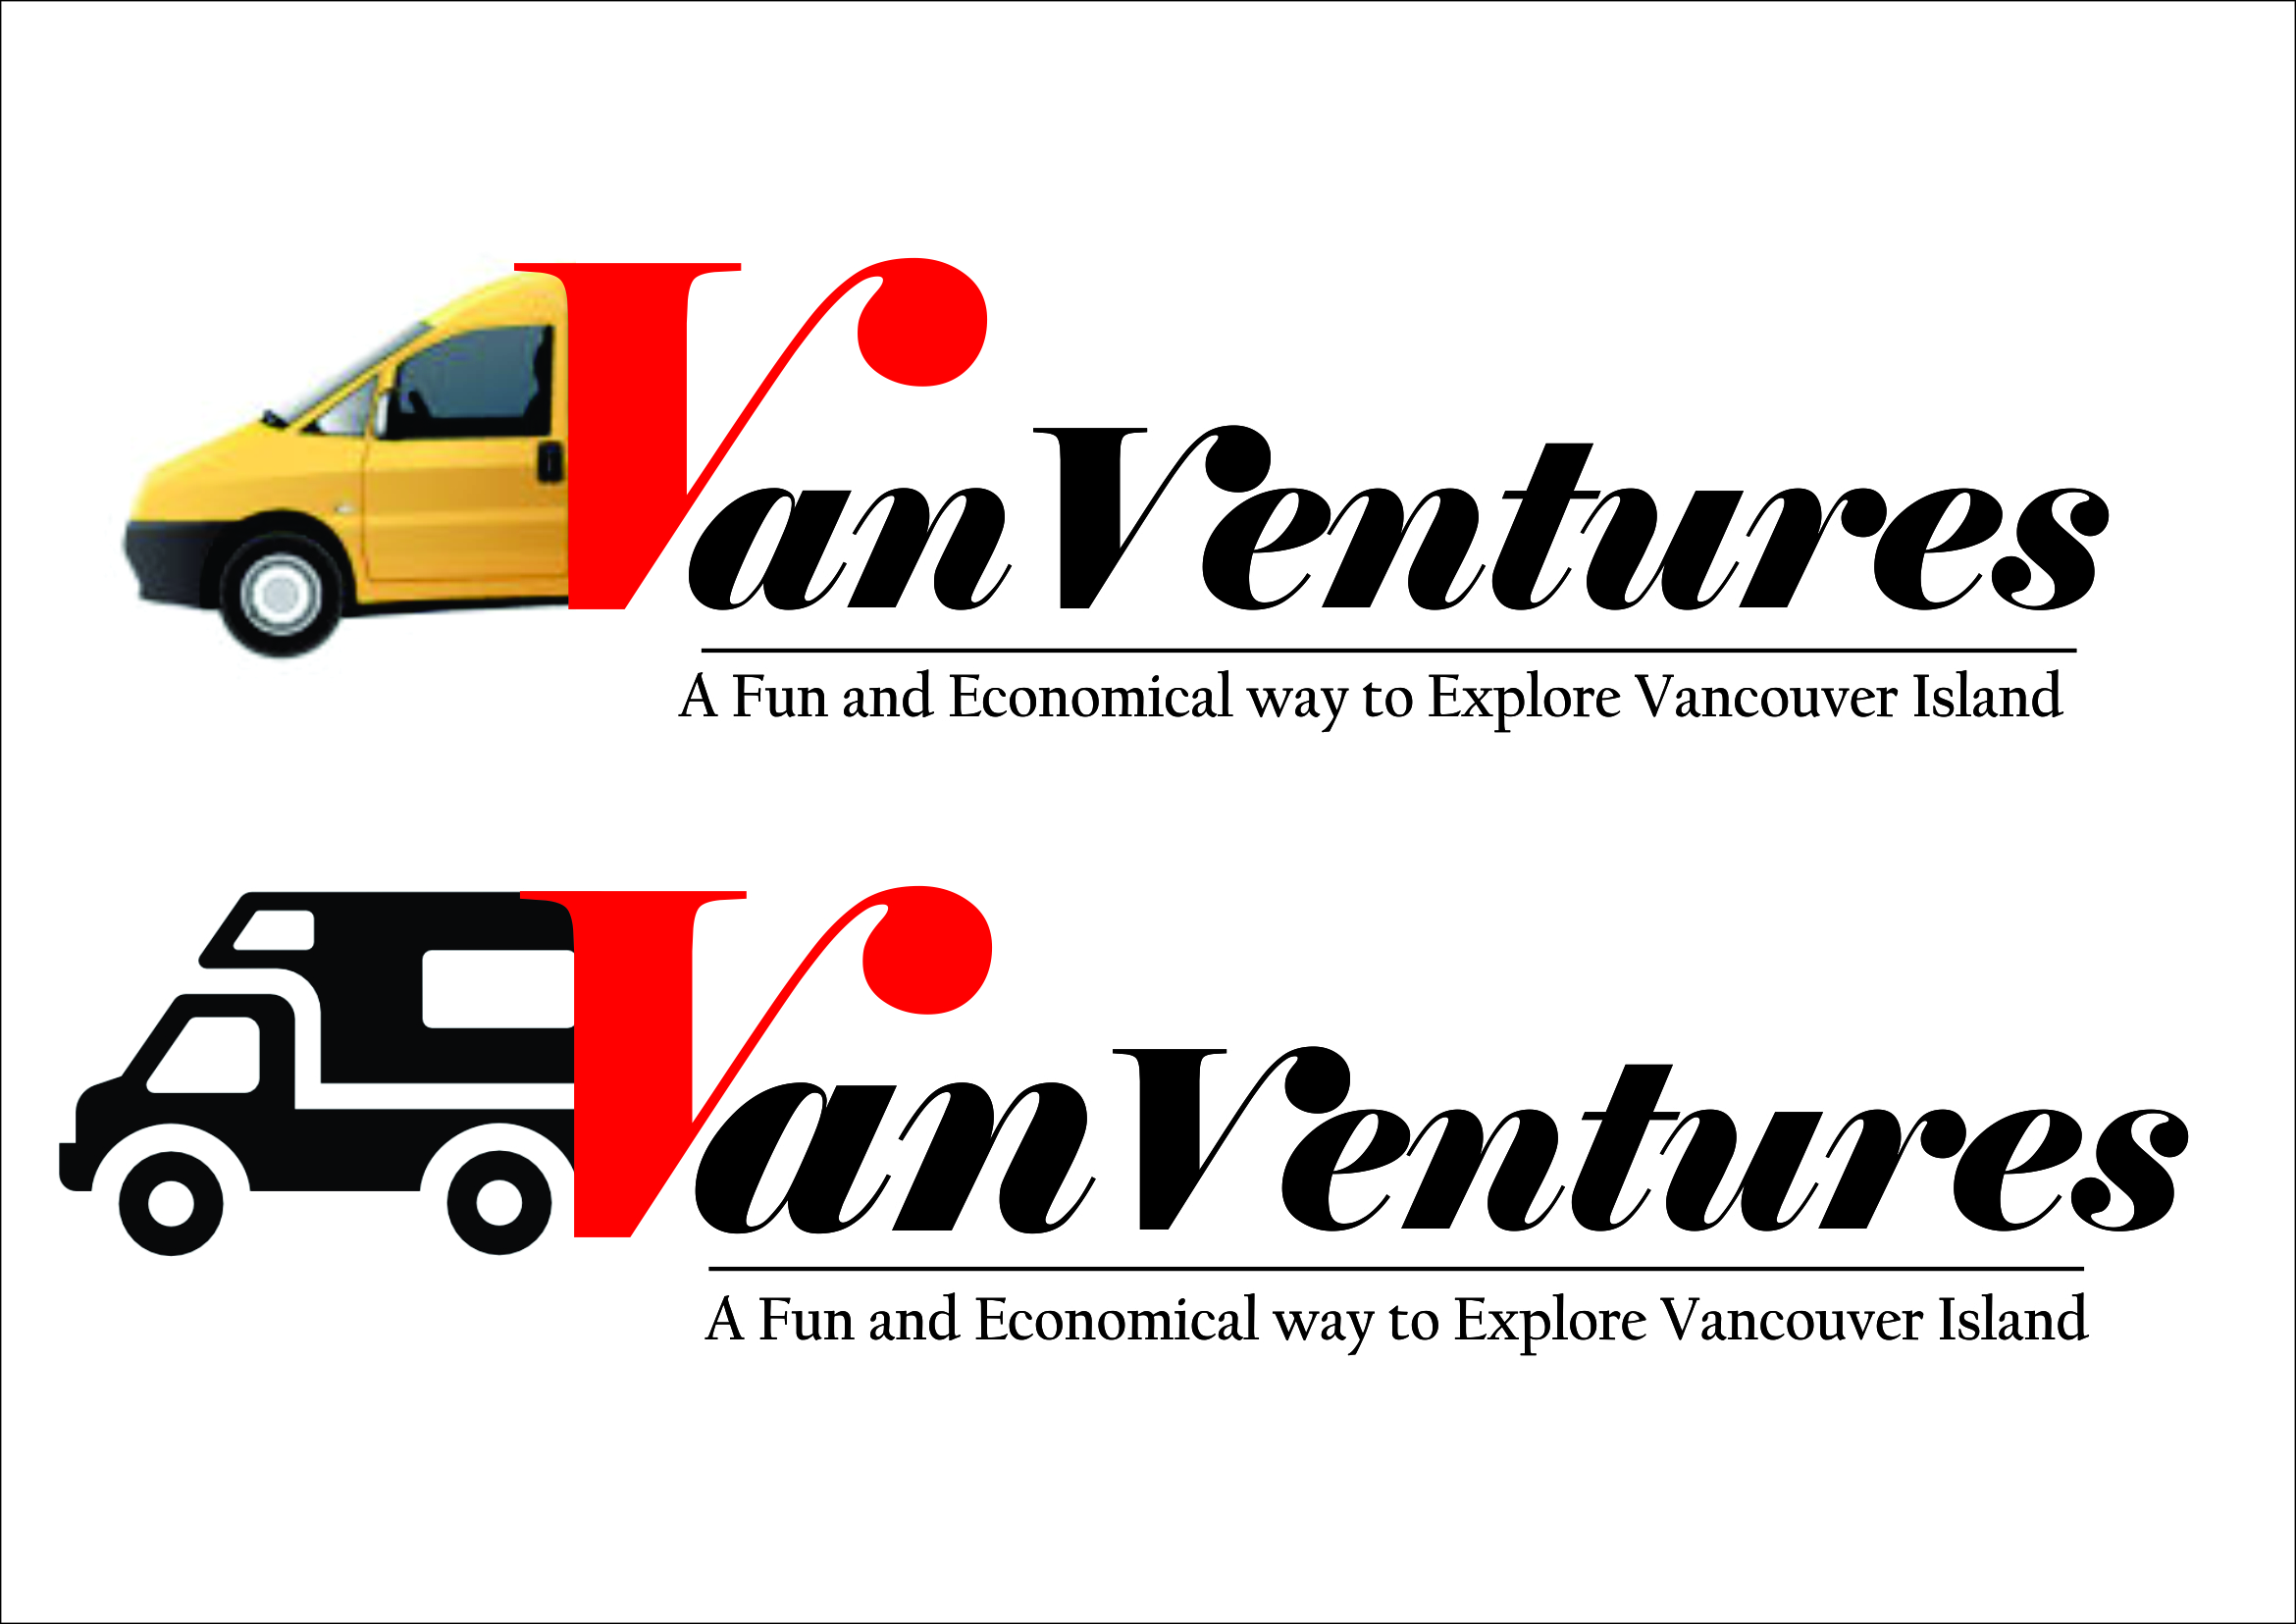 Logo Design by Bineesh Ck Bineesh - Entry No. 17 in the Logo Design Contest New Logo Design for Van Ventures.